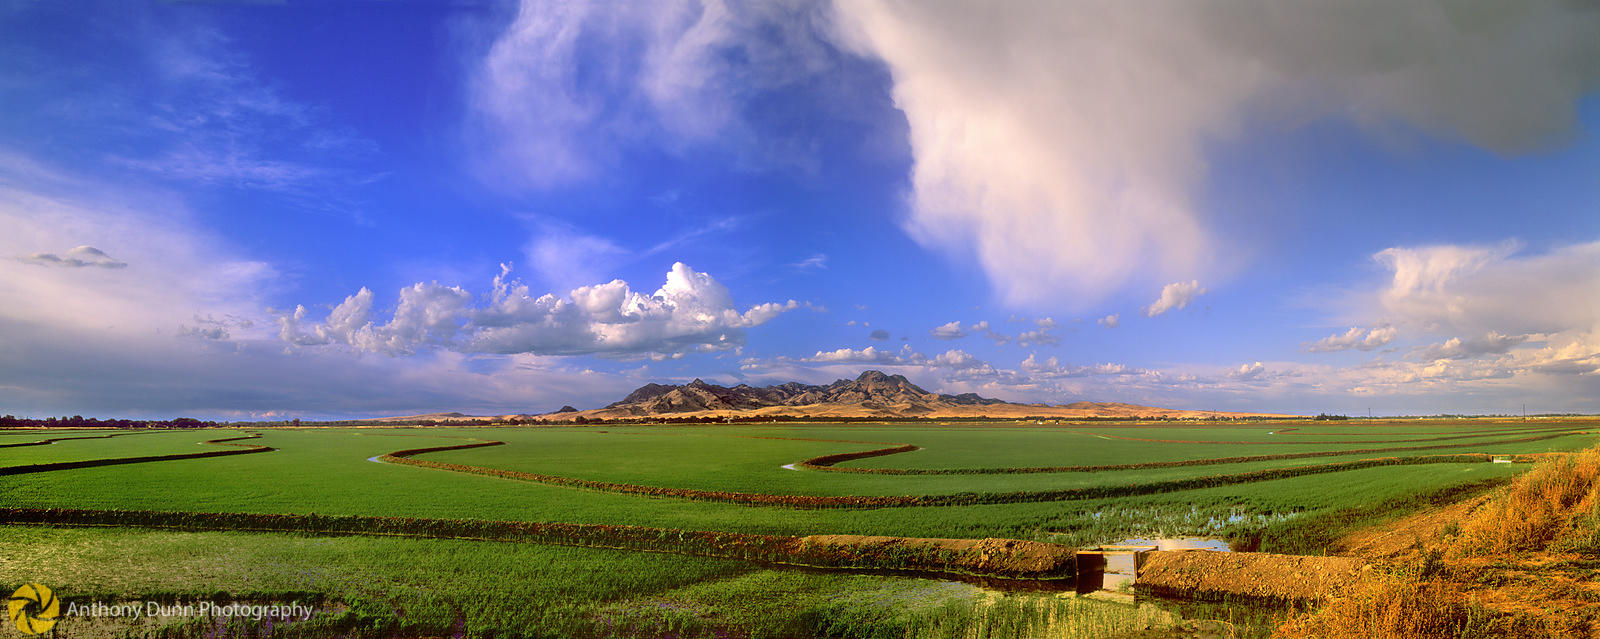 Rice Field Panorama